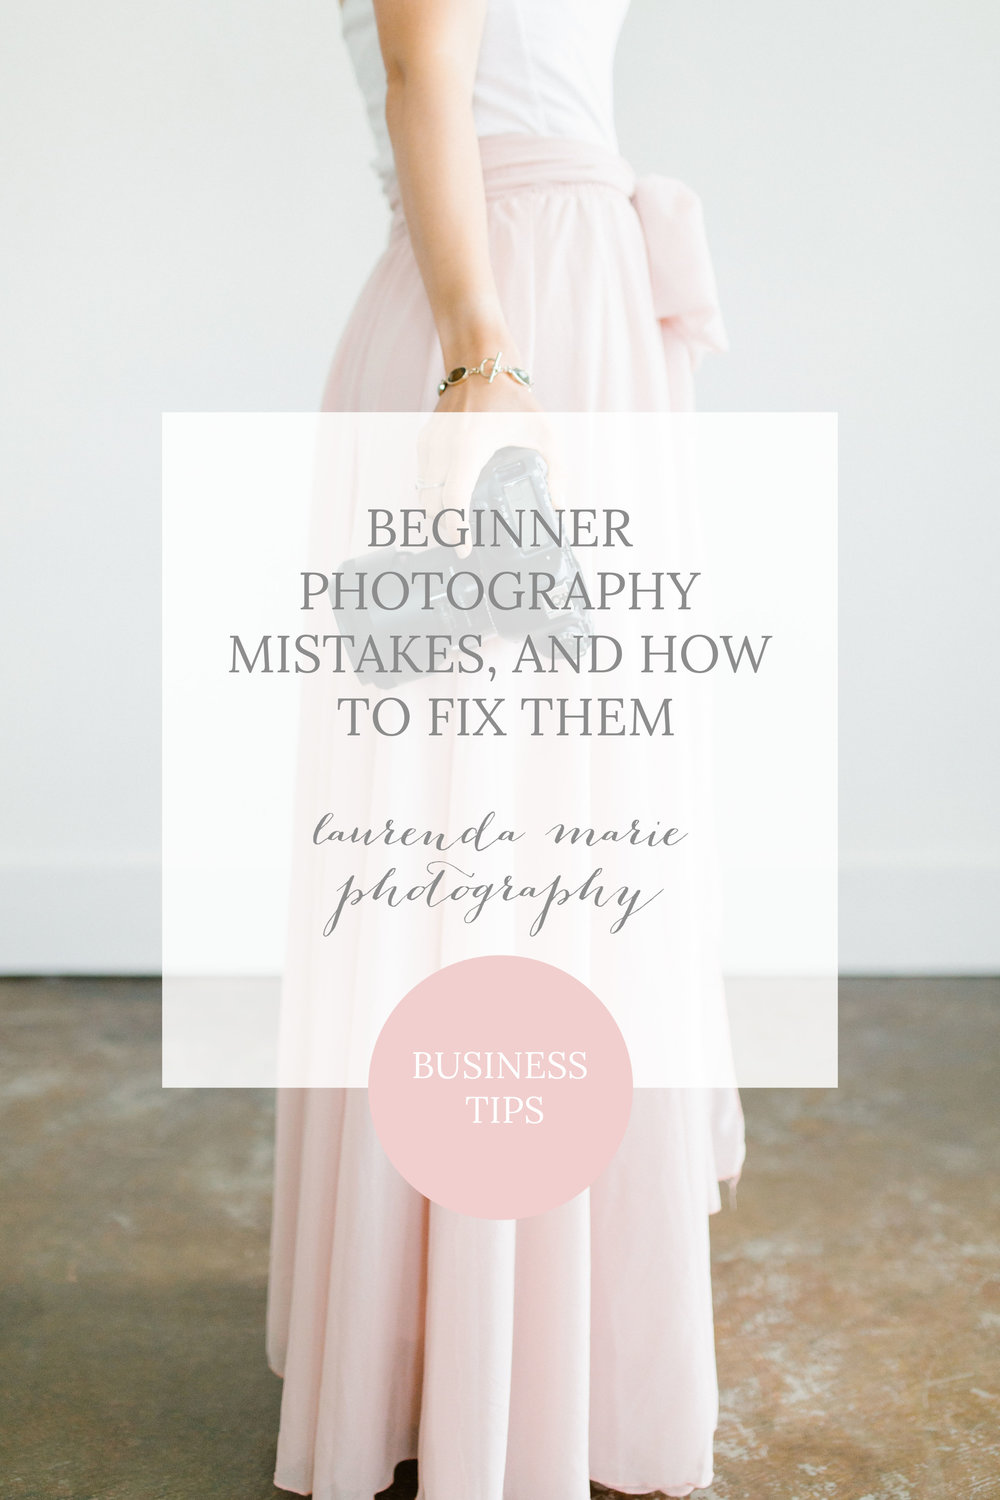 Beginner photography mistakes, and how to fix them | Laurenda Marie Photography | Business Tips & Advice